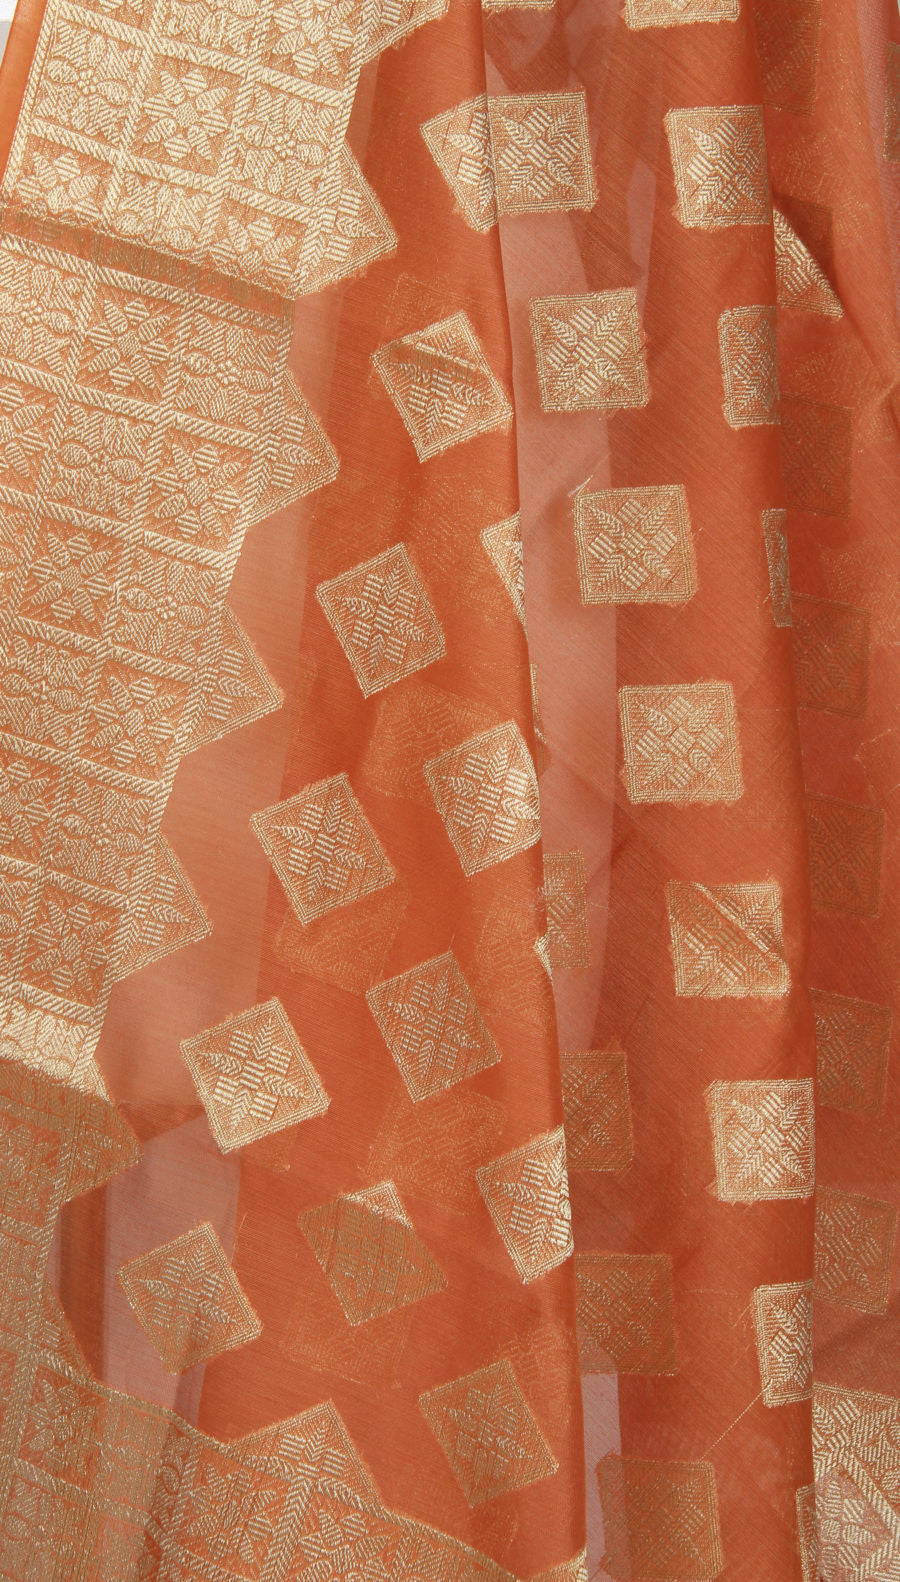 Orange Art Silk Cotton Banarasi Dupatta with diamond shape motifs (2) Close up